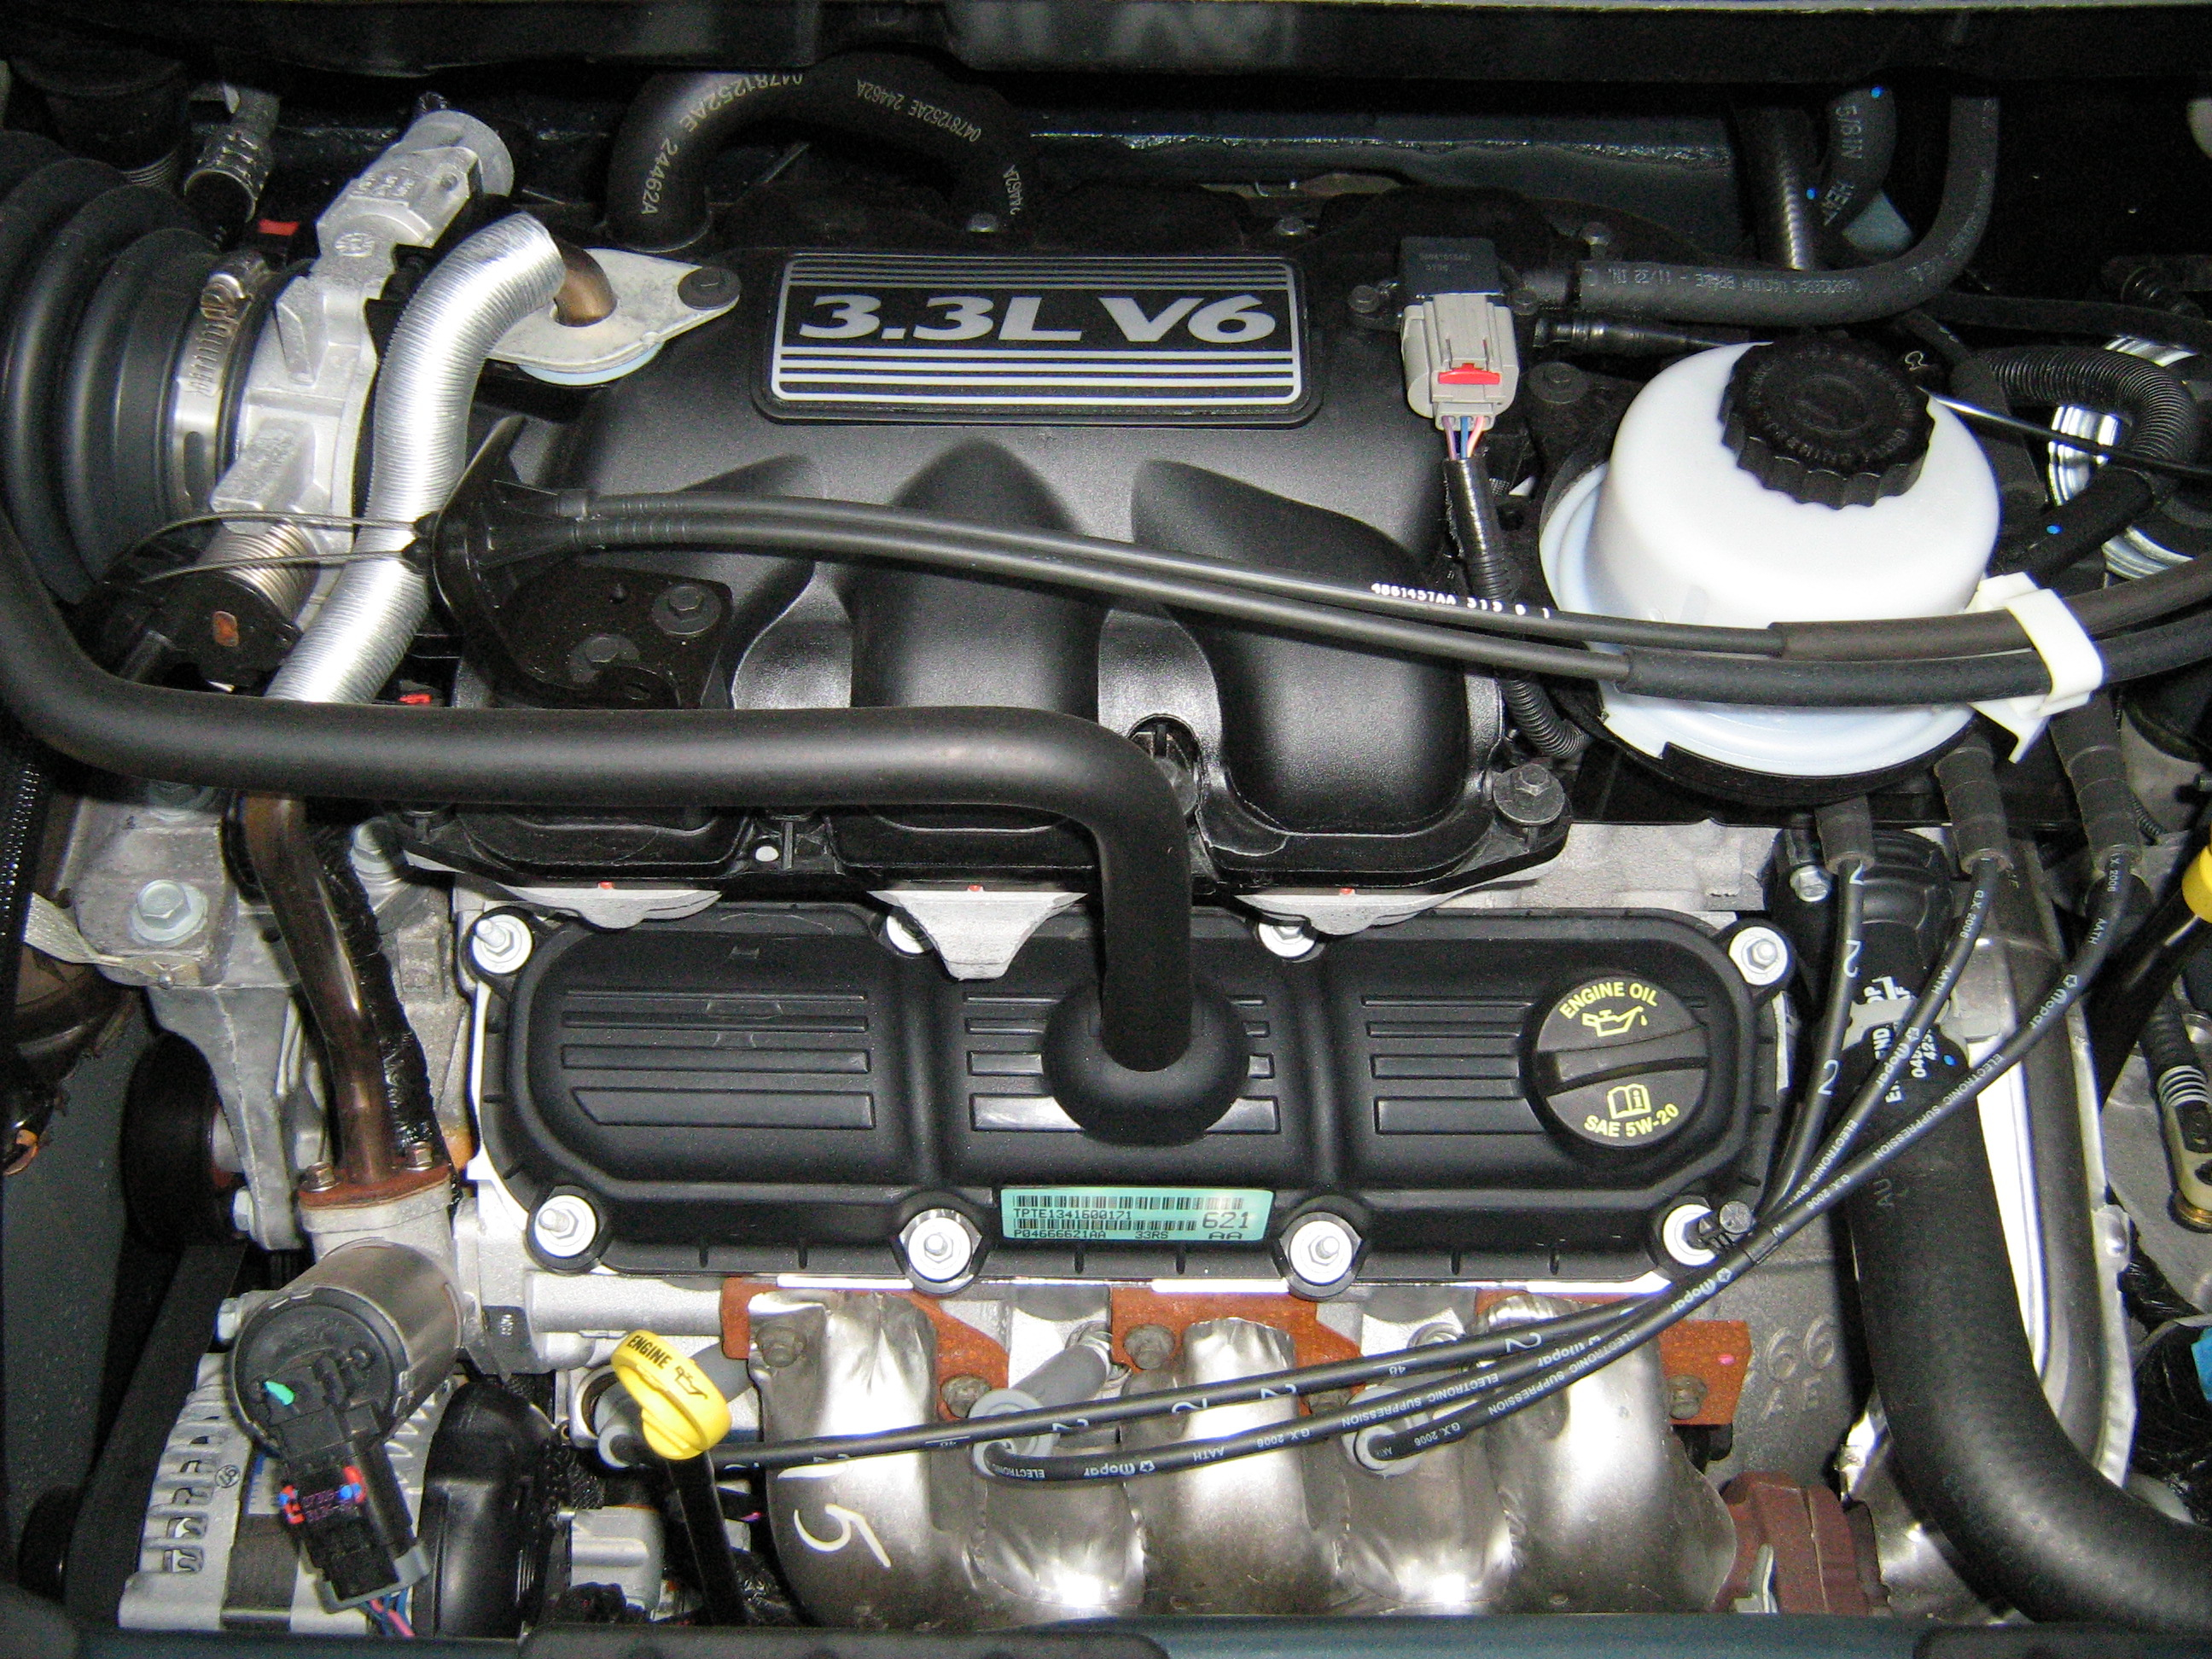 WRG-9829] 2006 Buick Rendezvous Engine Diagram on